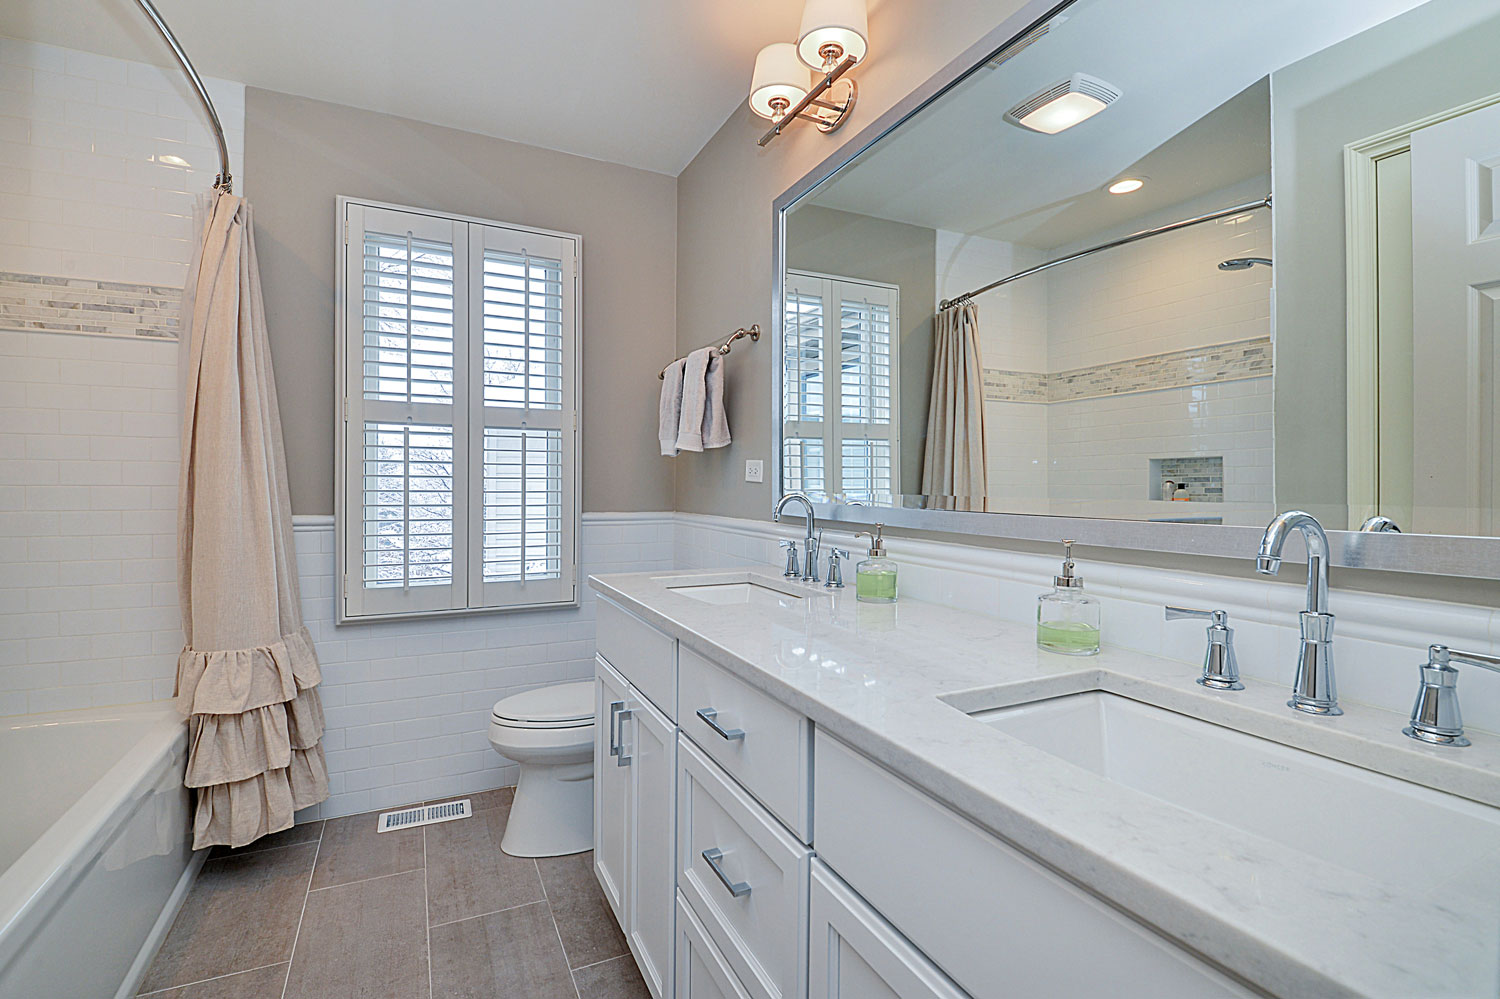 Carl susan 39 s hall bathroom remodel pictures home for Bathroom design service